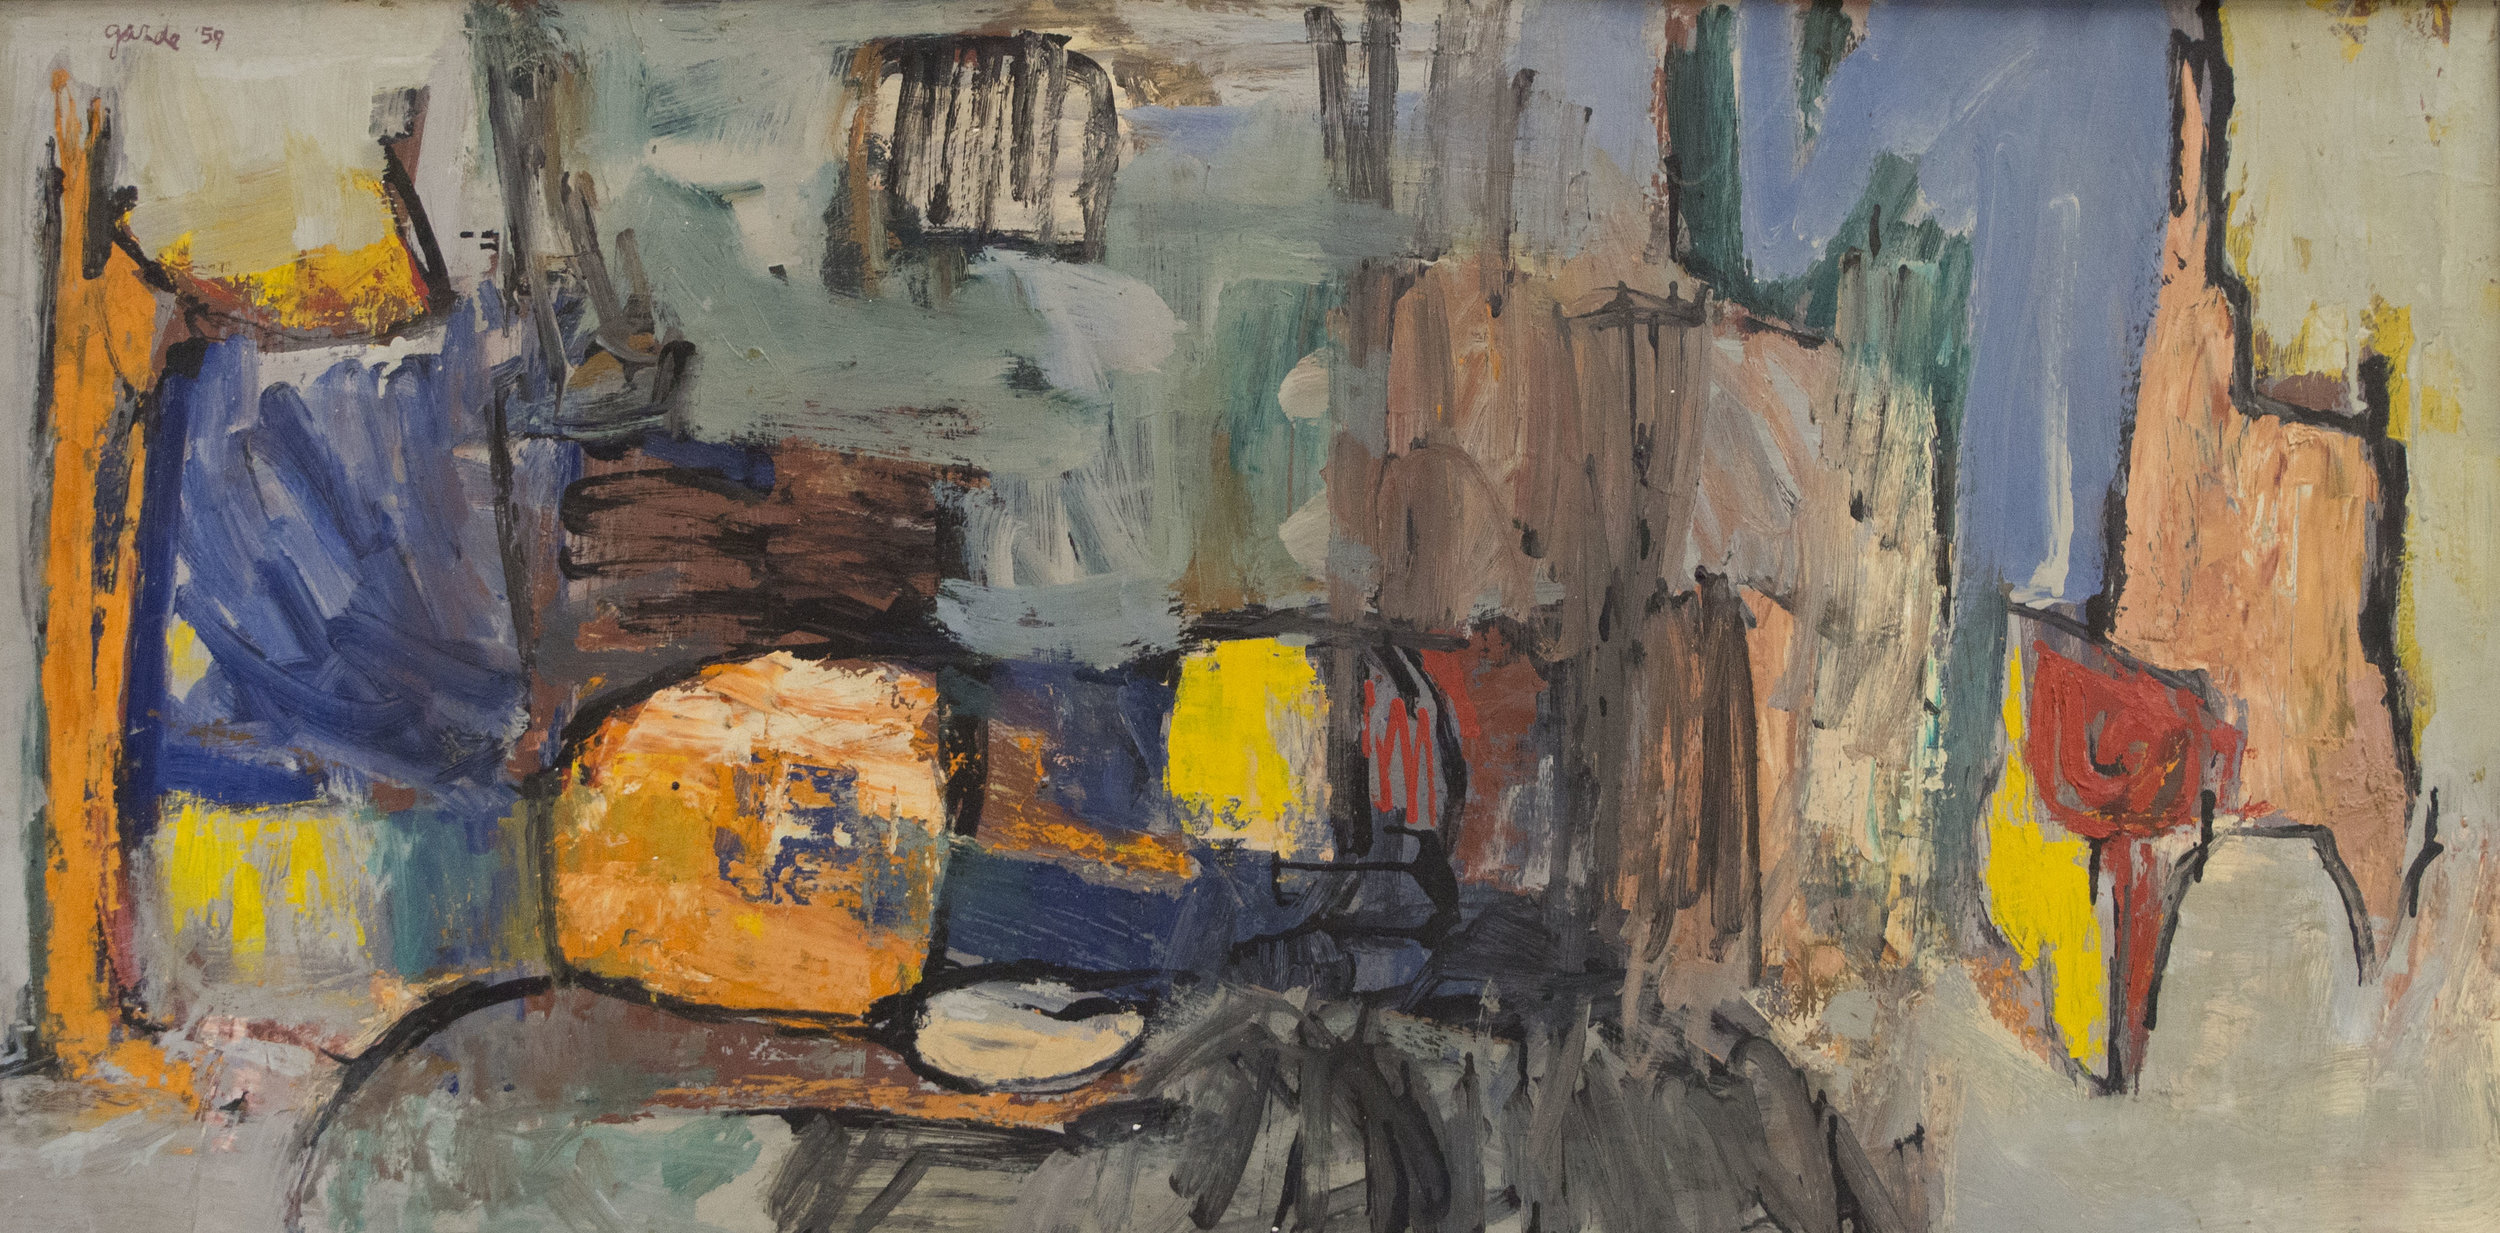 Untitled , 1959. Oil on hardboard (masonite), 24 x 48 in. (61 x 122 cm.), Private Collection